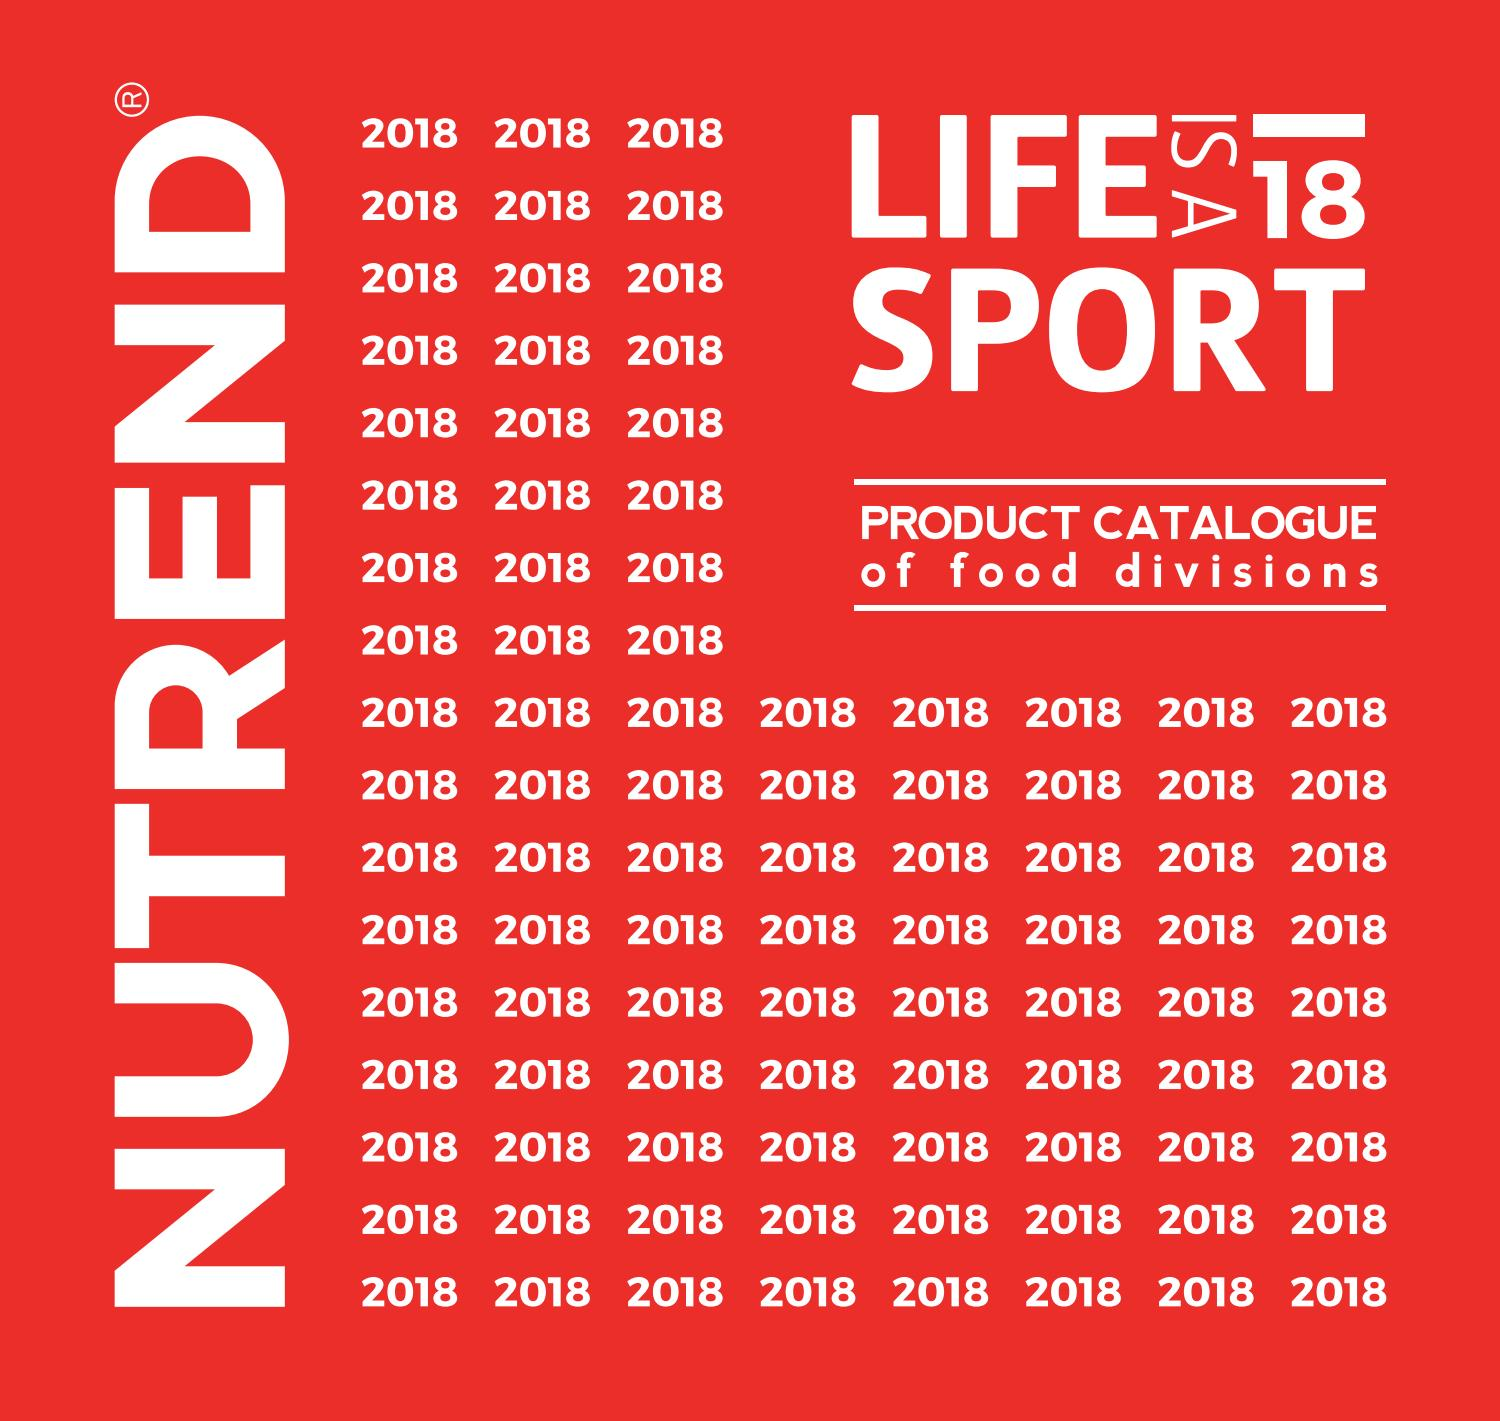 ebe36dbe16b Nutrend product catalogue food division 2018 by NUTREND D.S.